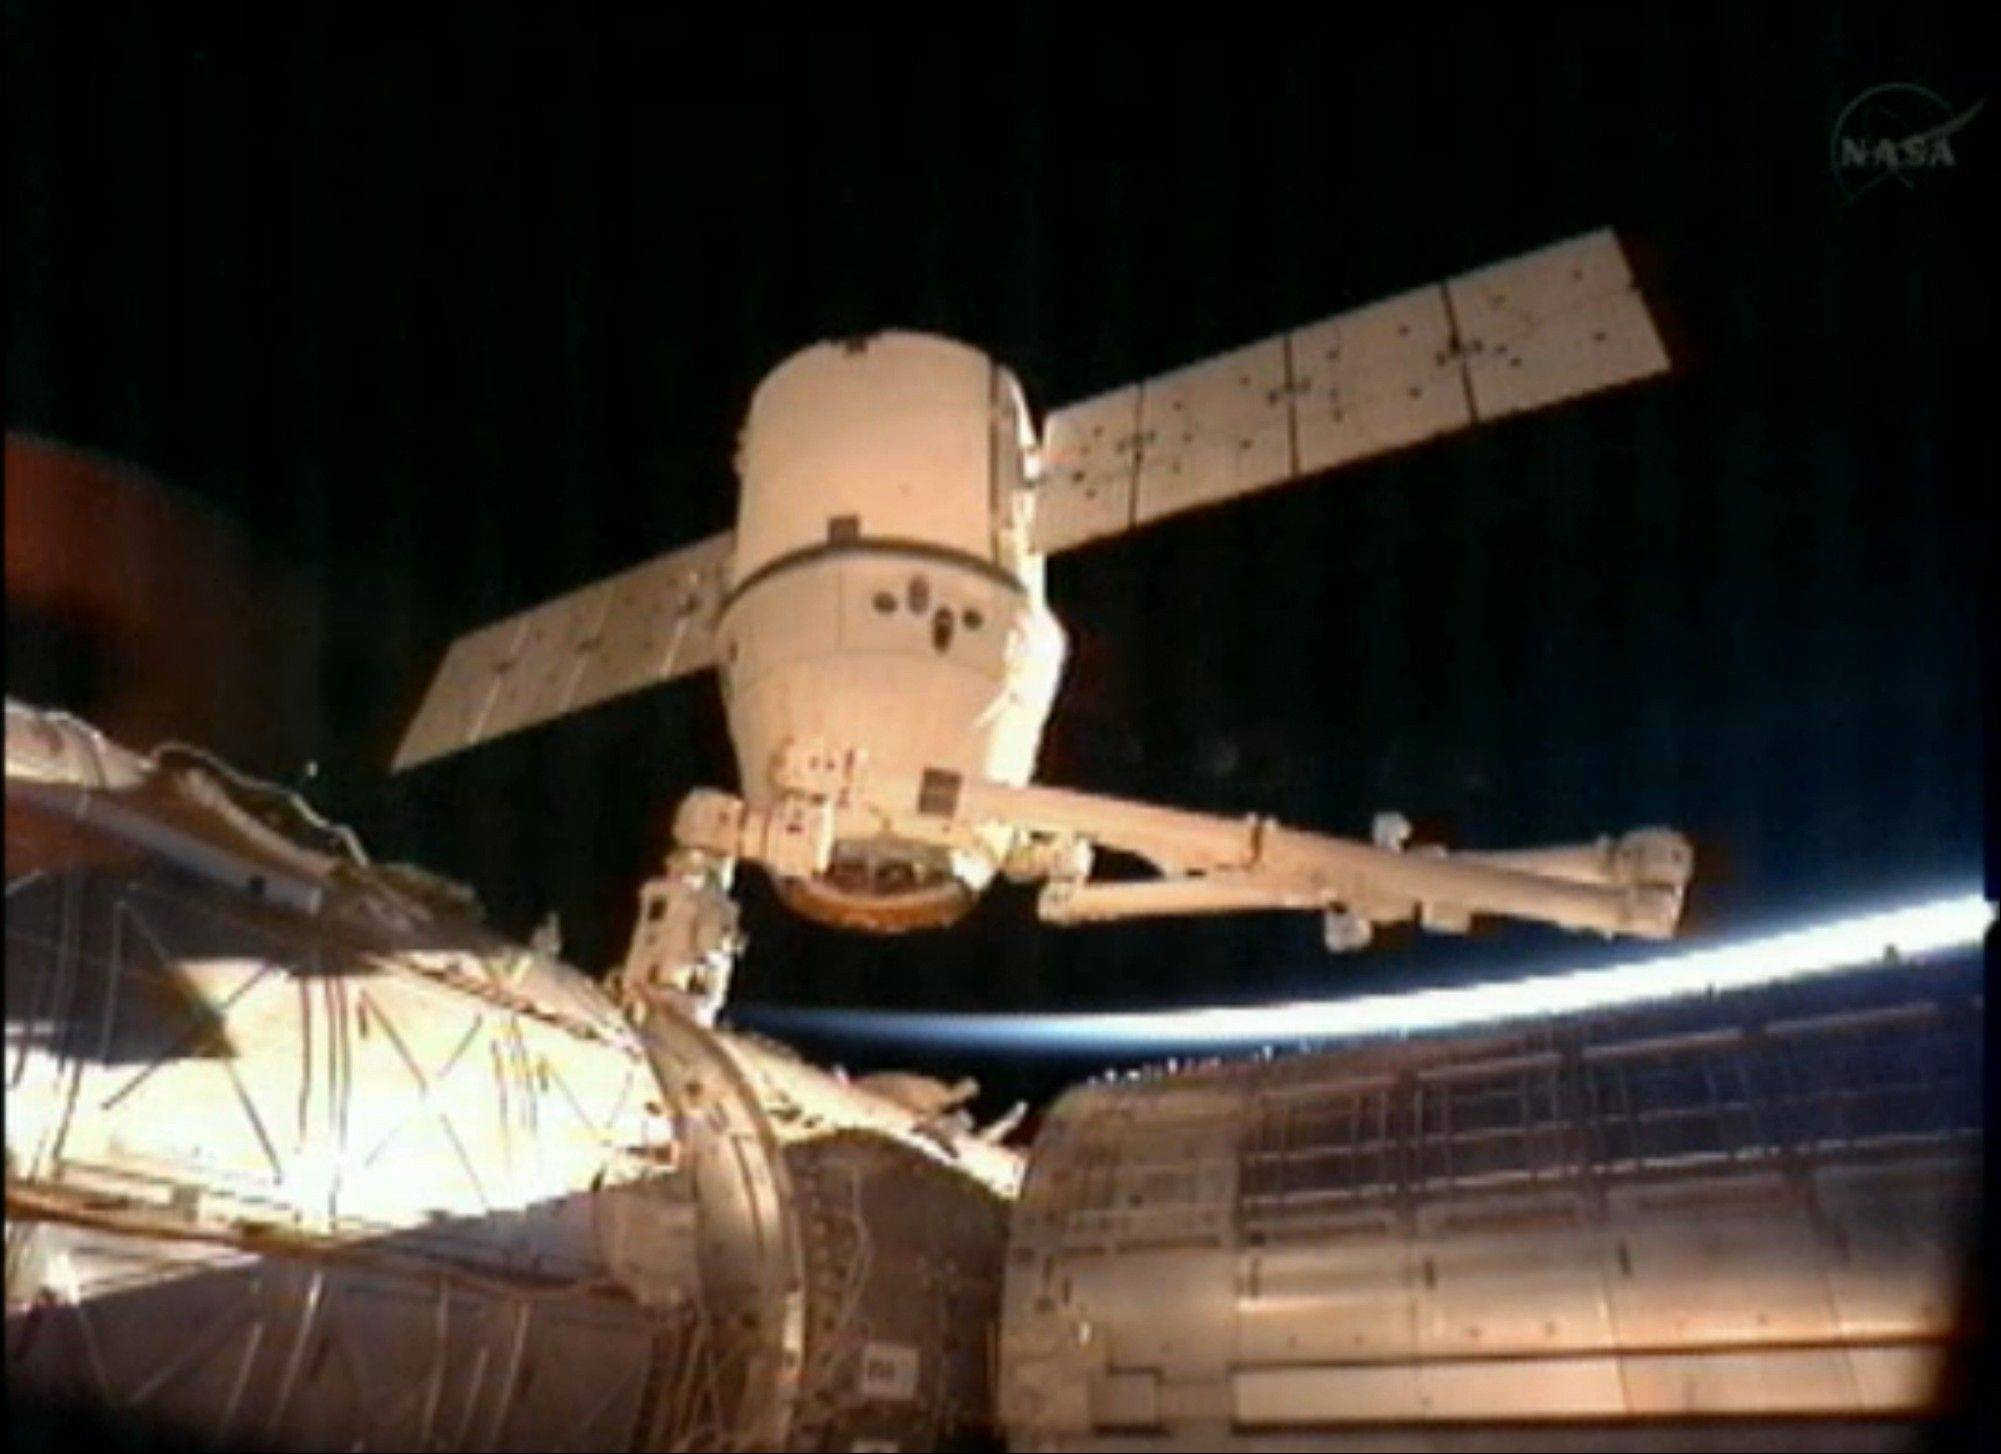 SpaceX Dragon commercial cargo craft after it was detached from the International Space Station early Tuesday.